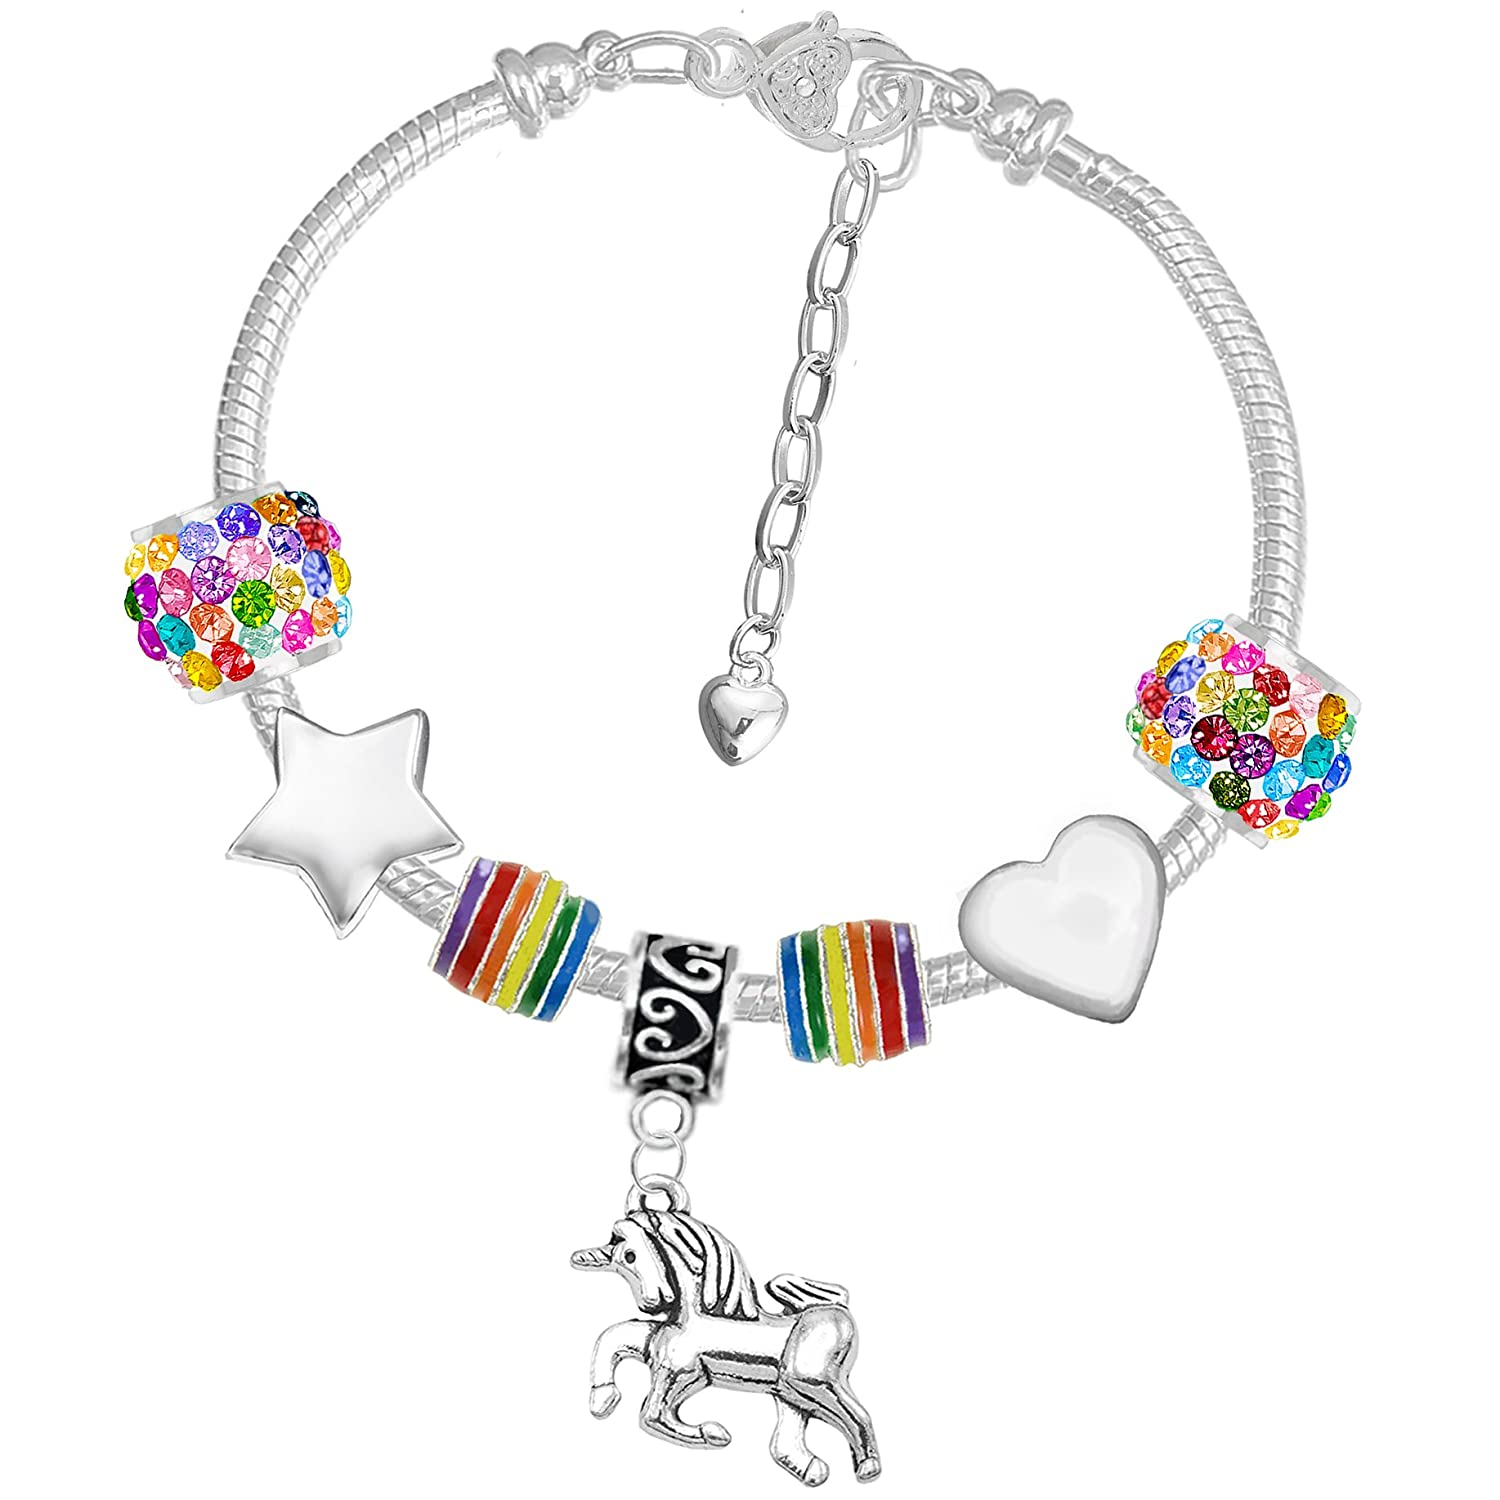 Girls Magical Unicorn Sparkly Rainbow Charm Bracelet Set with Greeting Card and Gift Box Charm Buddy ® NXG CH-71 Q-32